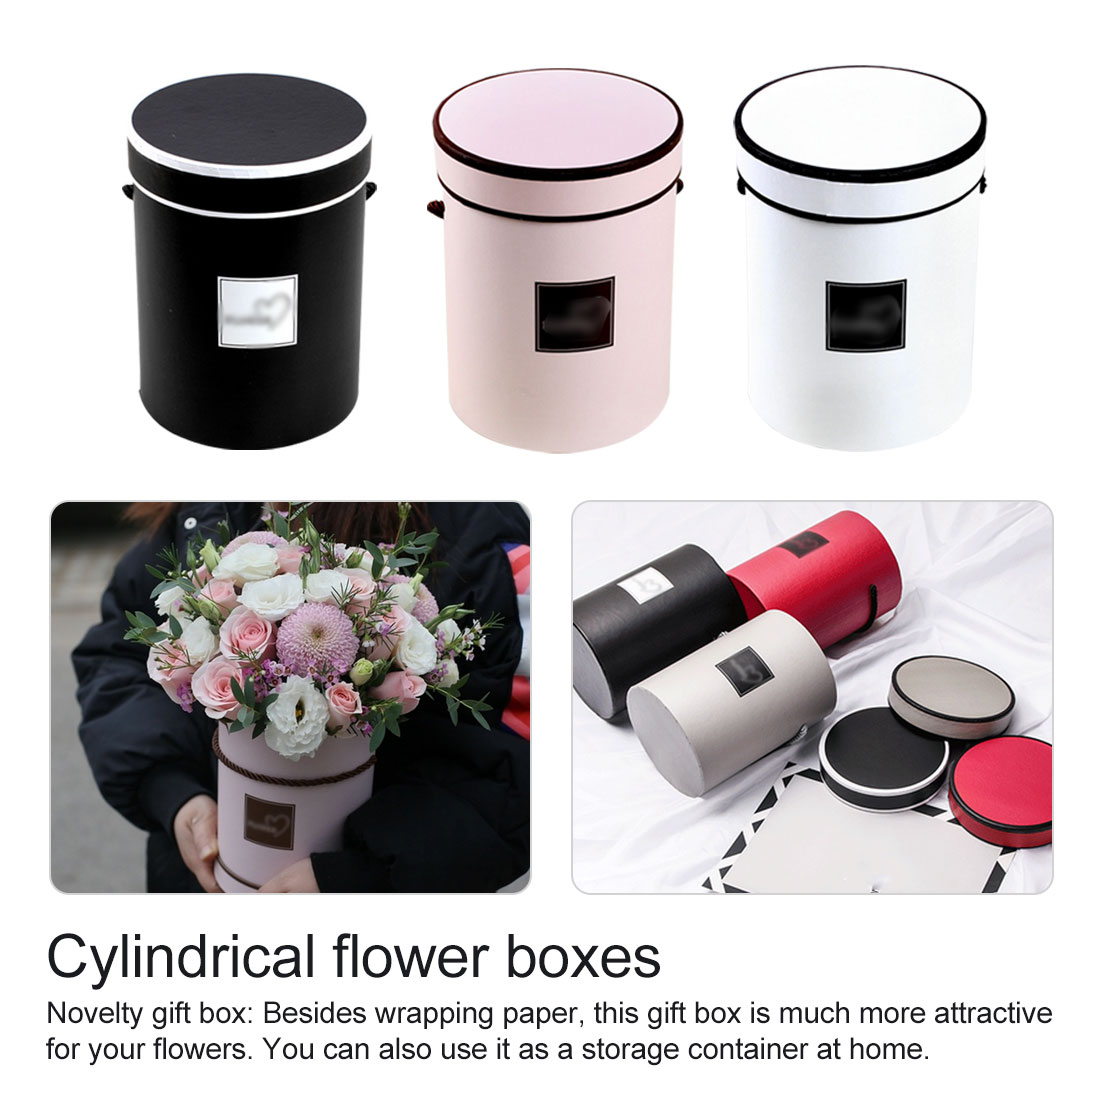 Round Flower Paper Boxes With Lid Florist Bouquet Box Cylindrical Packaging Flower Hug Bucket Flower Bouquet Holder